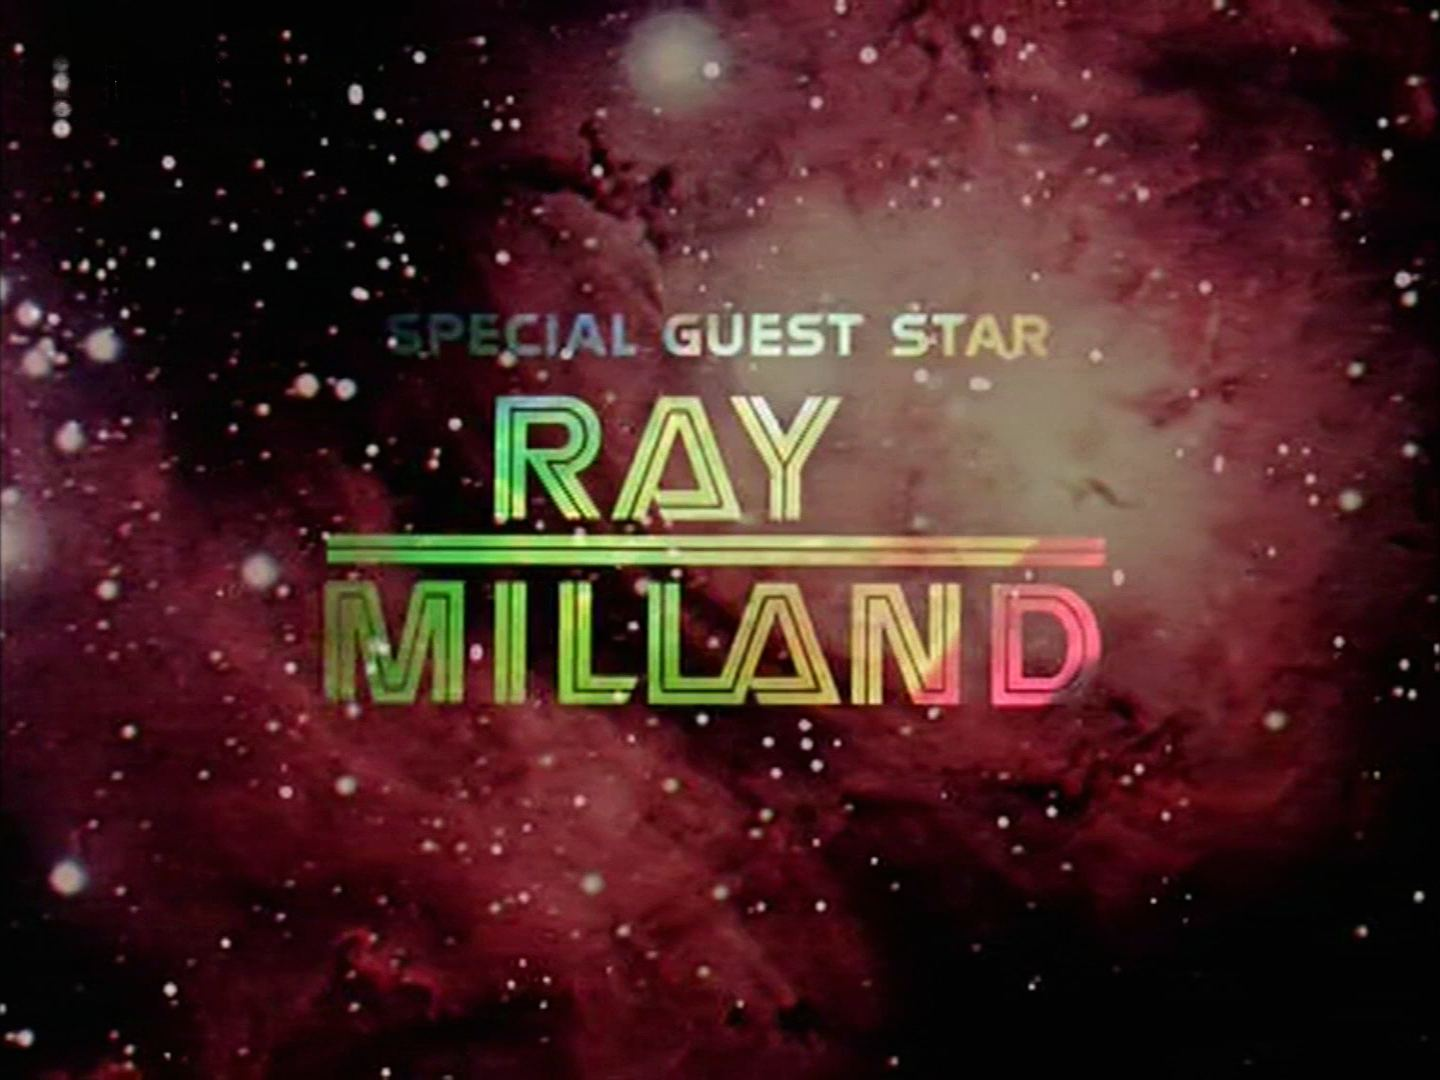 Main title from the 1978 'Saga of a Star World' story of Battlestar Galactica (1978-79) (11). Special guest star Ray Milland